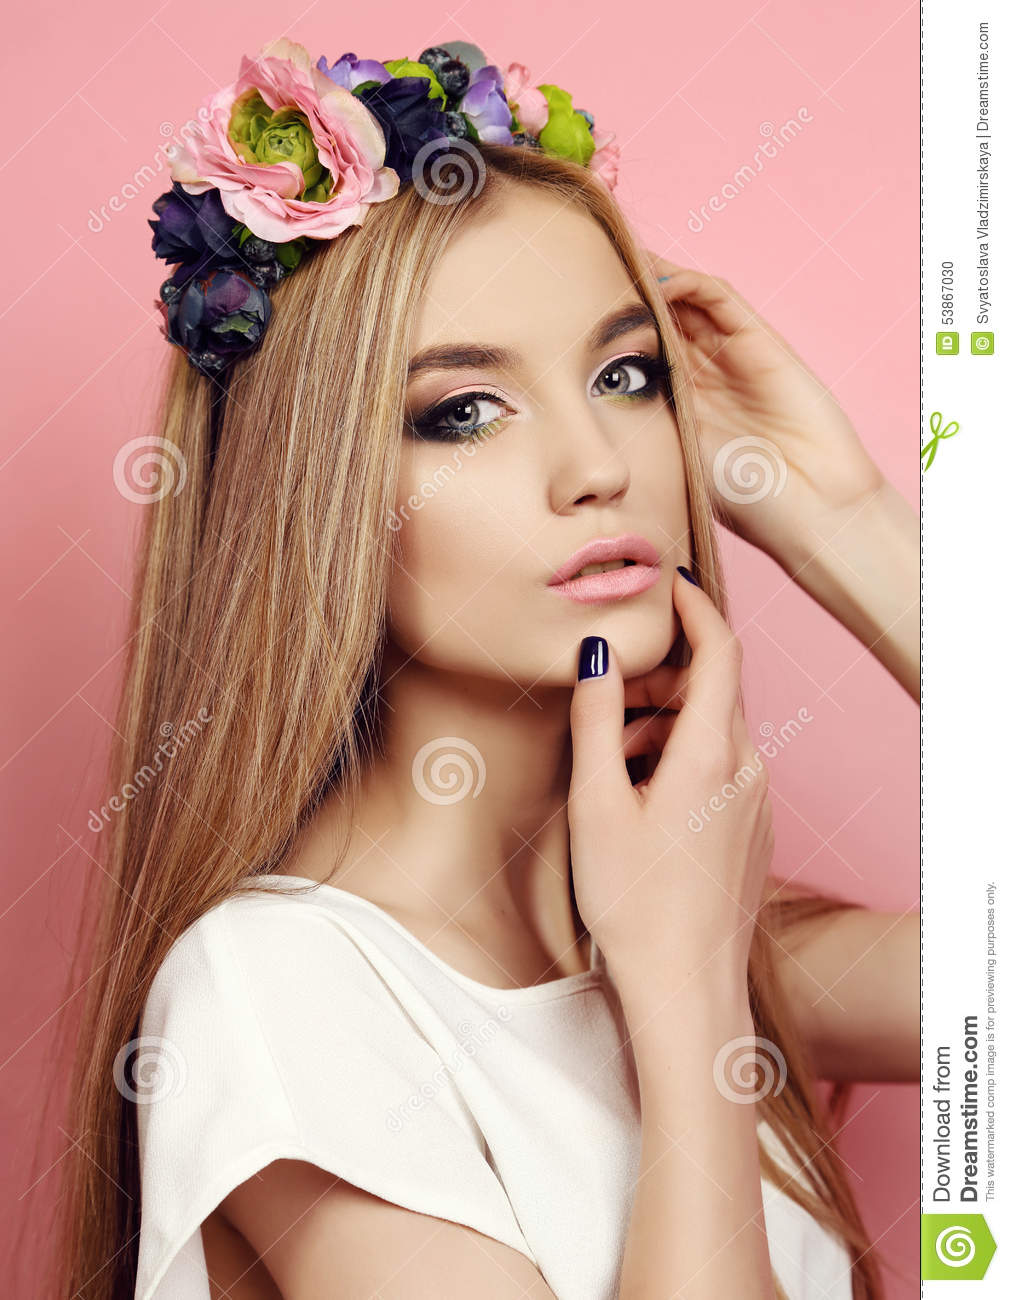 Beautiful young girl with long straight hair with bright flowers fashion studio photo of beautiful young girl with long straight natural hair with bright flowers headband izmirmasajfo